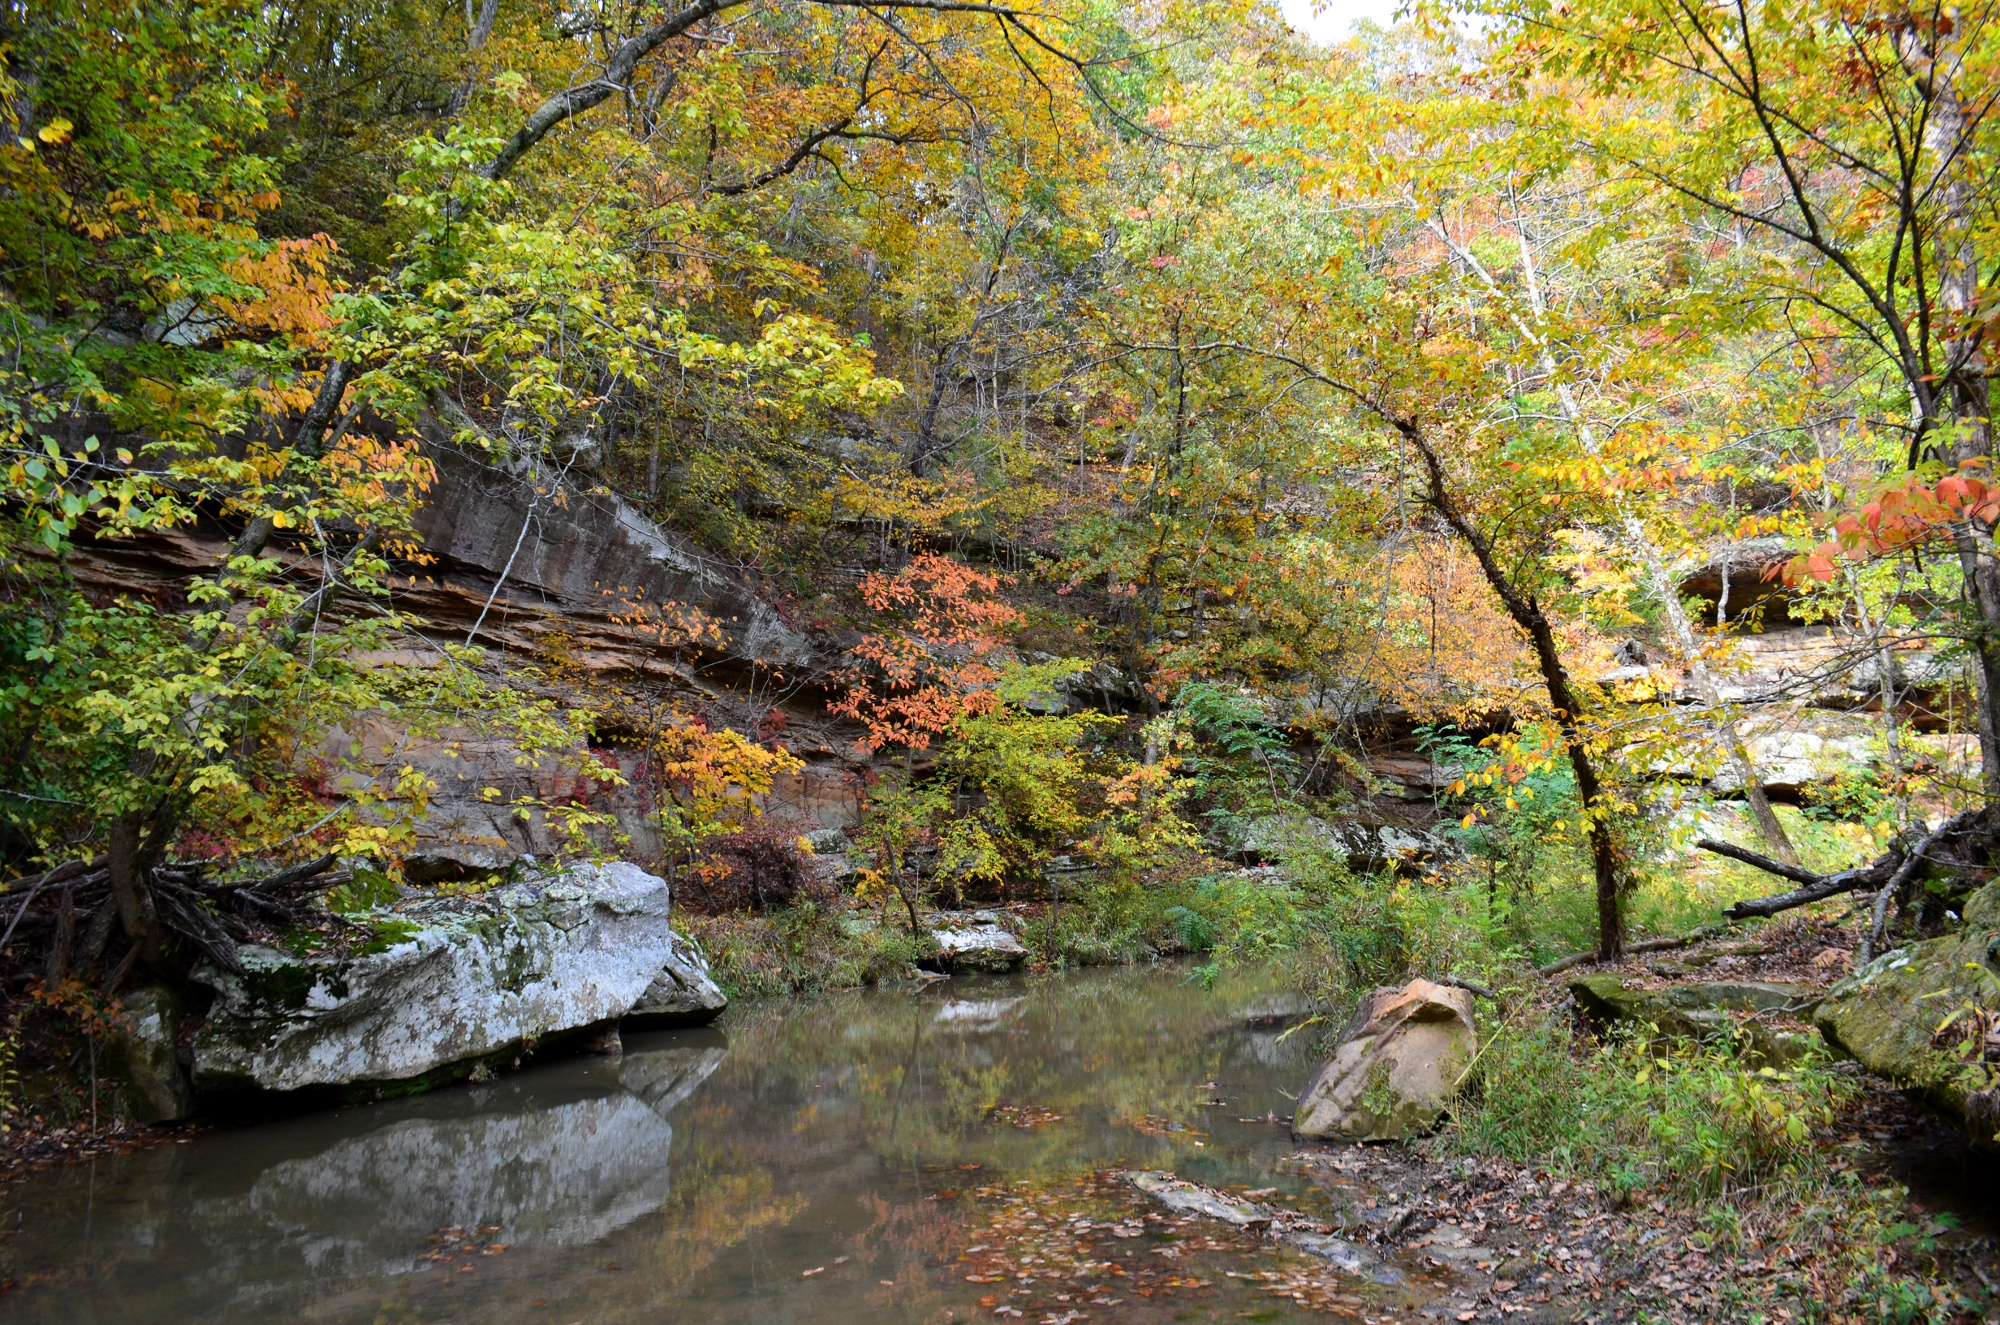 Selected for display. Chris Benda: Piney Creek Ravine. Randolph County.